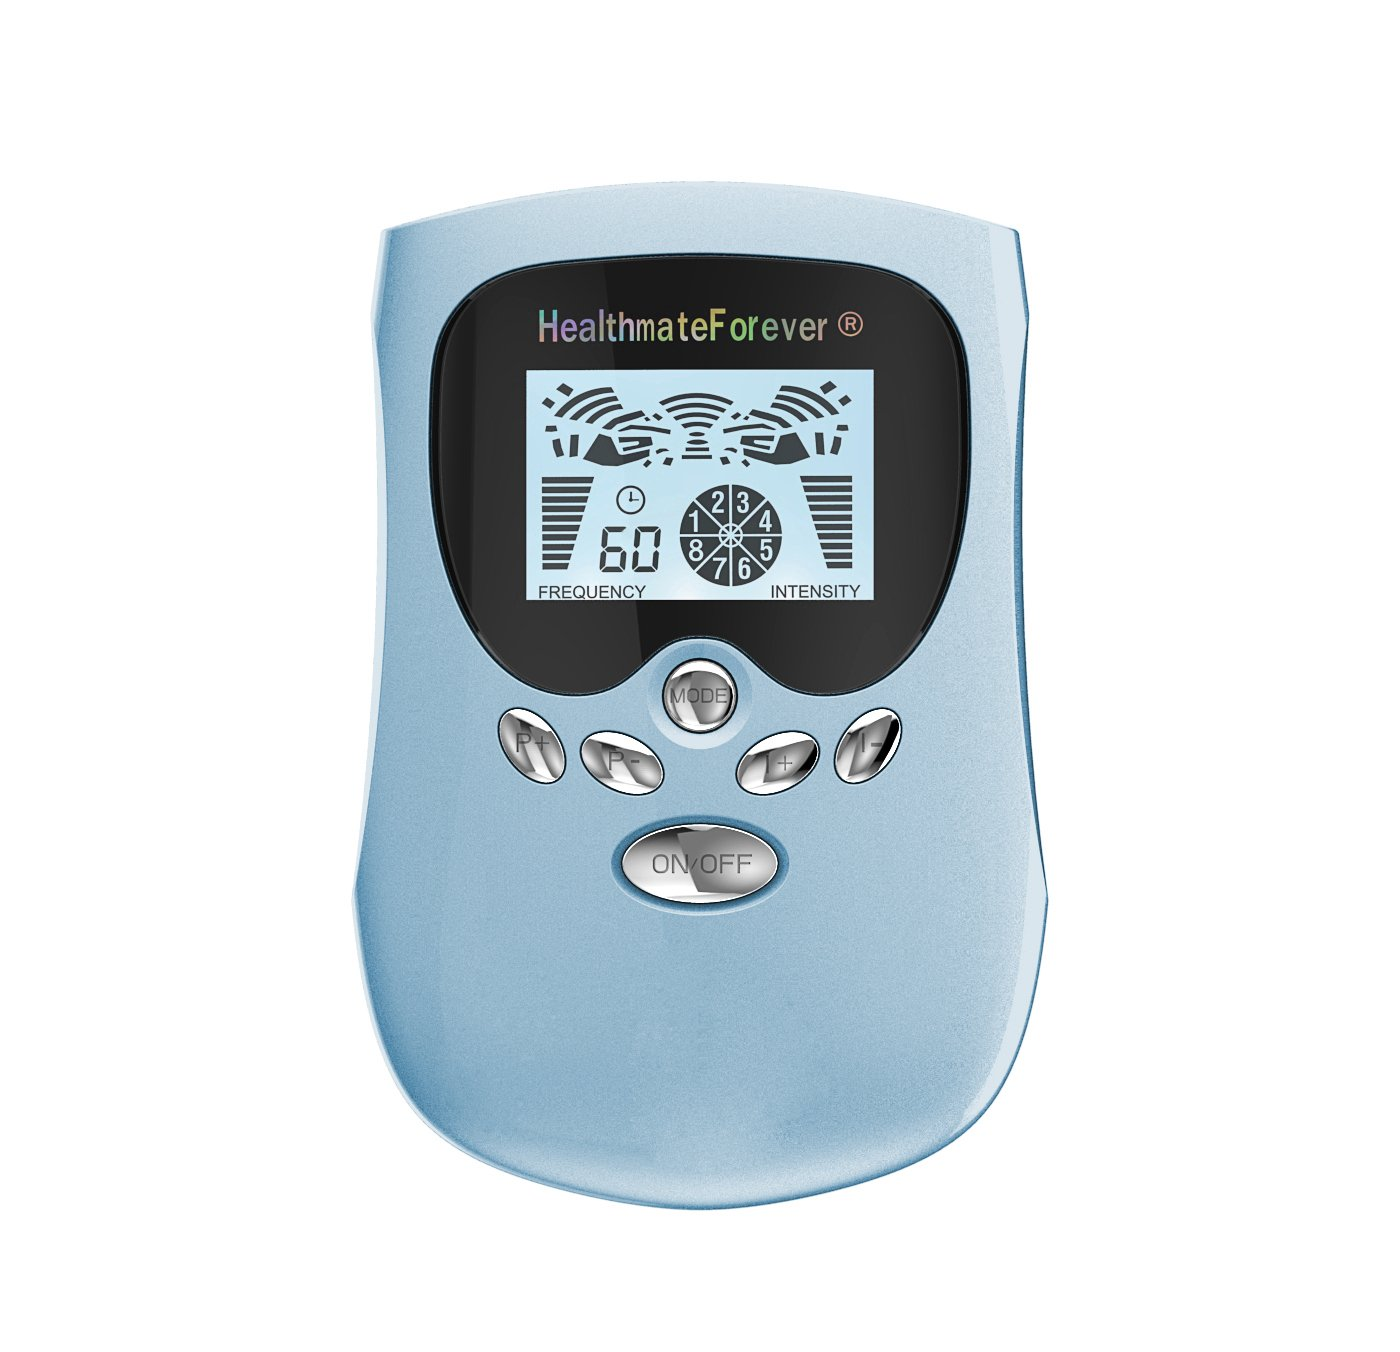 PM8 HealthmateForever TENS Unit Electrical Muscle Stimulator Blue